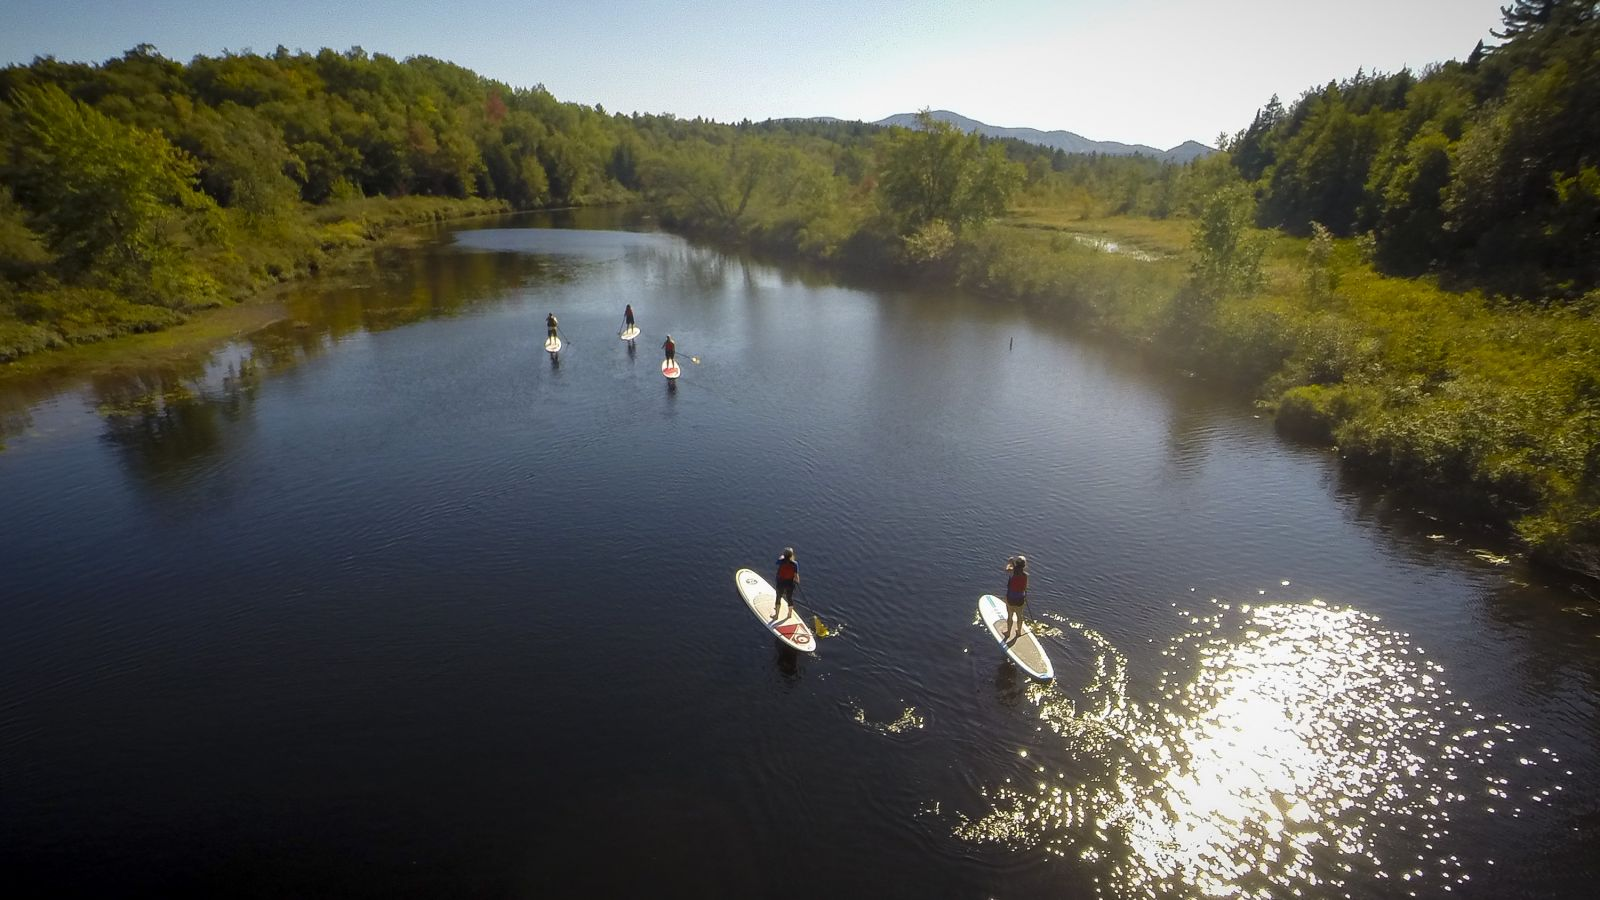 What's SUP? A paddling day on the Raquette, that's what! (Wild Center photo)